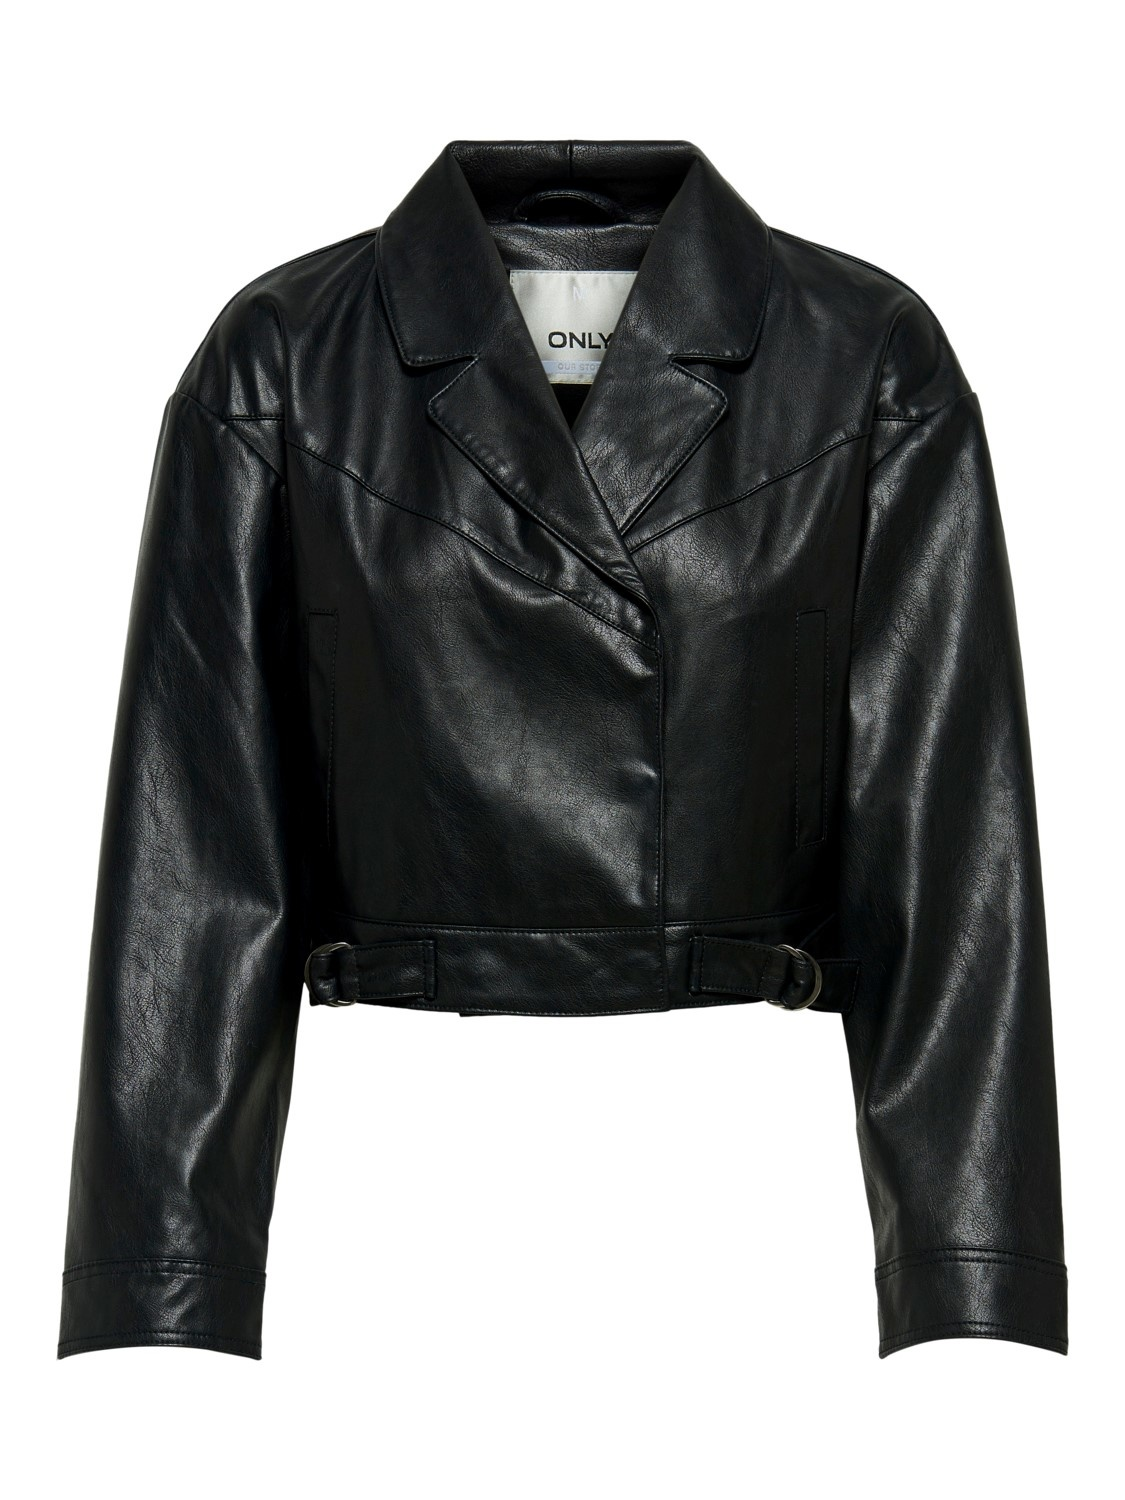 PEPITES only veste kara faux leather-1